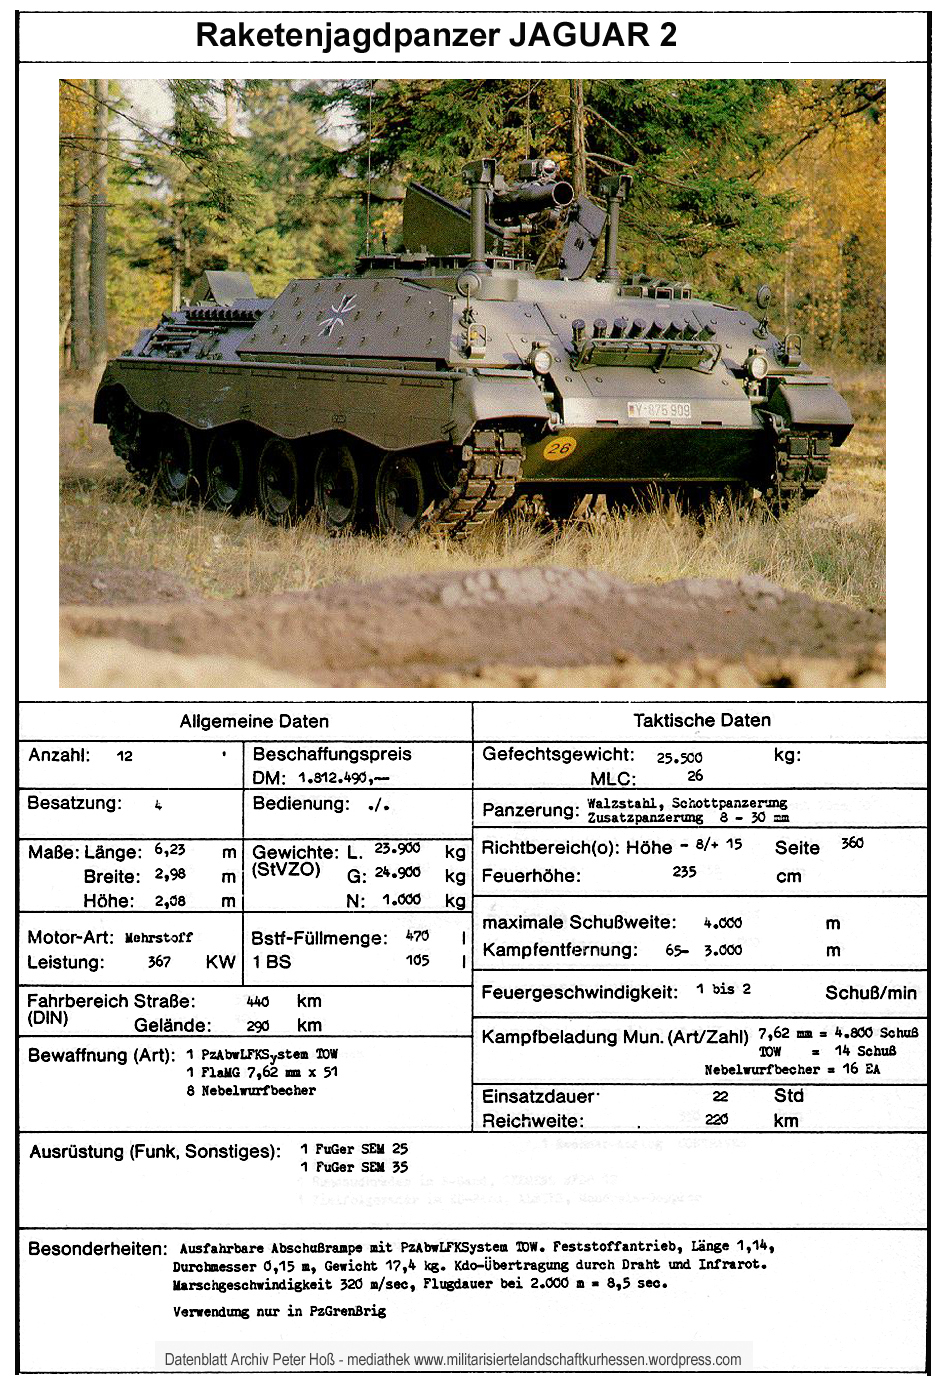 Datenblatt RakJgPz Jaguar 2